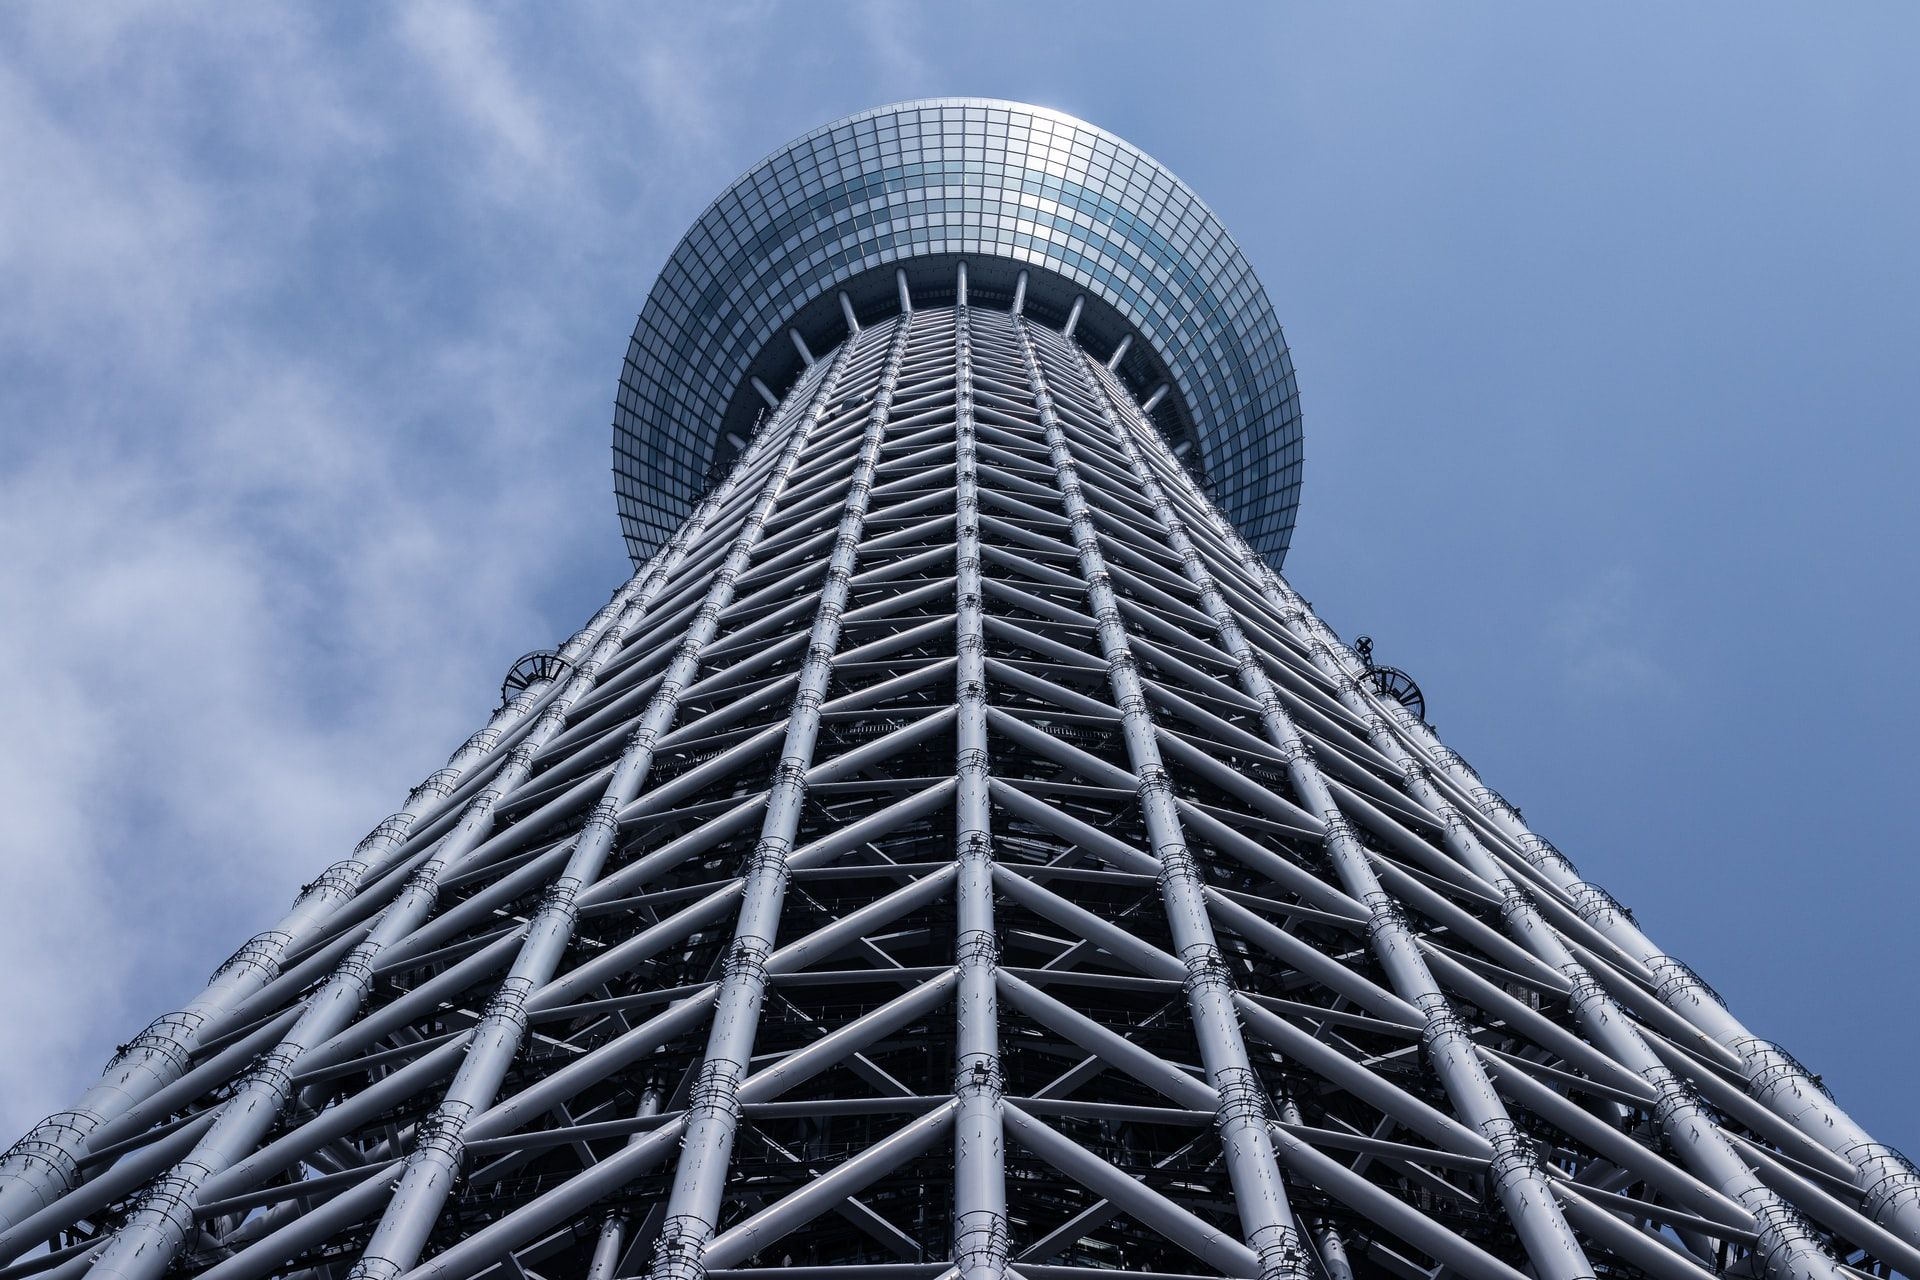 Skytree Tower in Tokyo. Looking up the tower from its base, structural elements visible